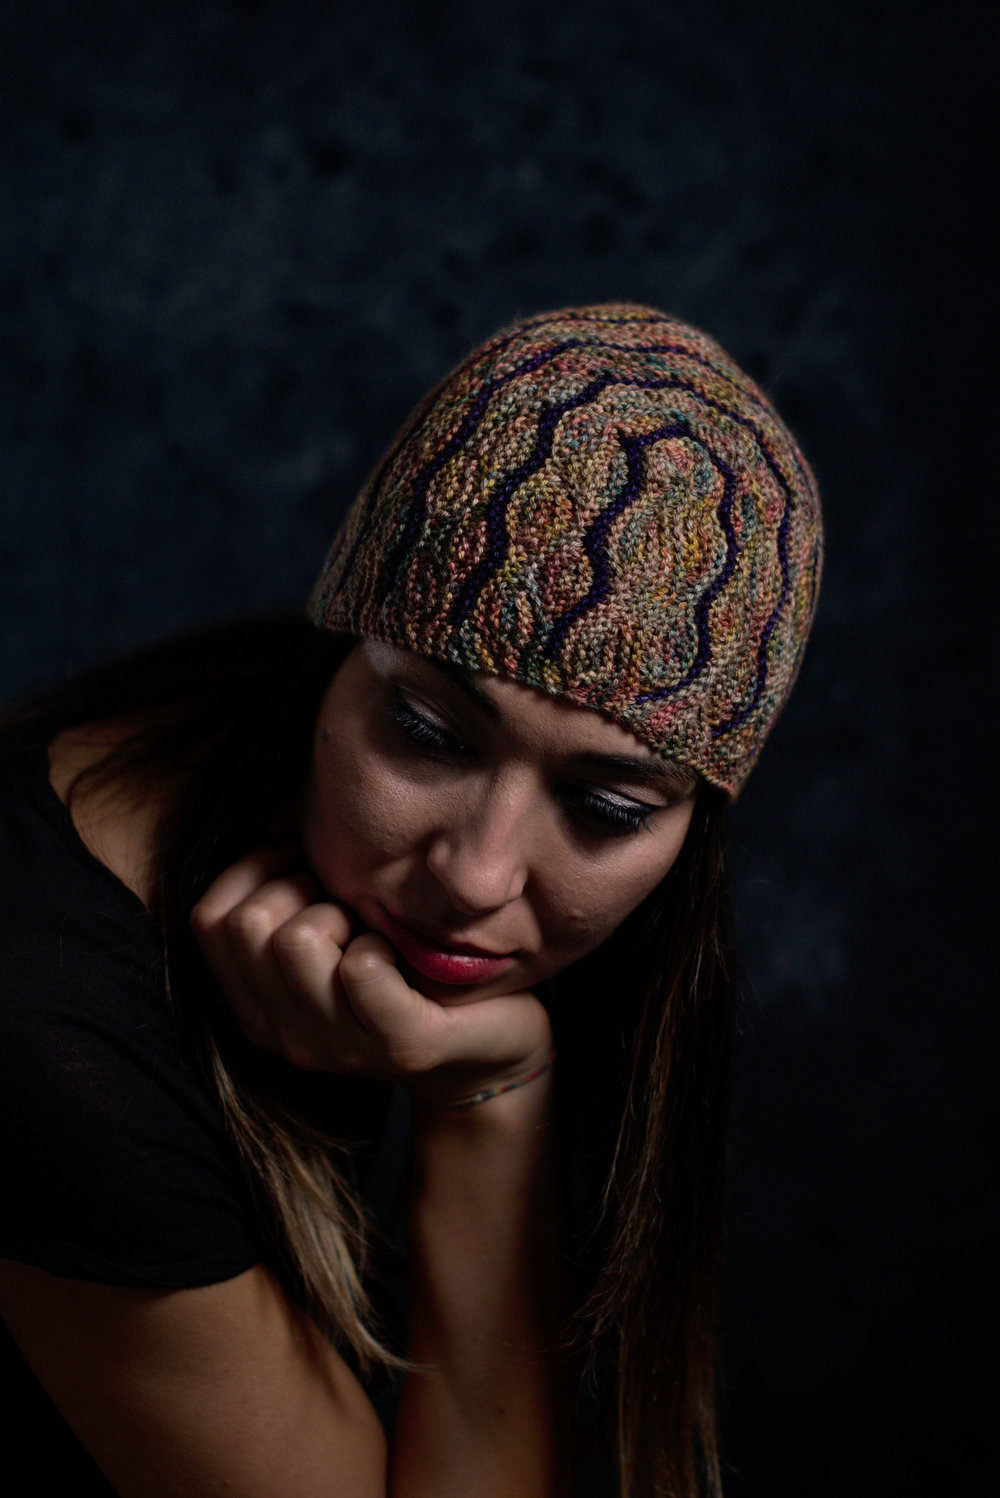 Undulous sideways knit short row colourwork hat knitting pattern